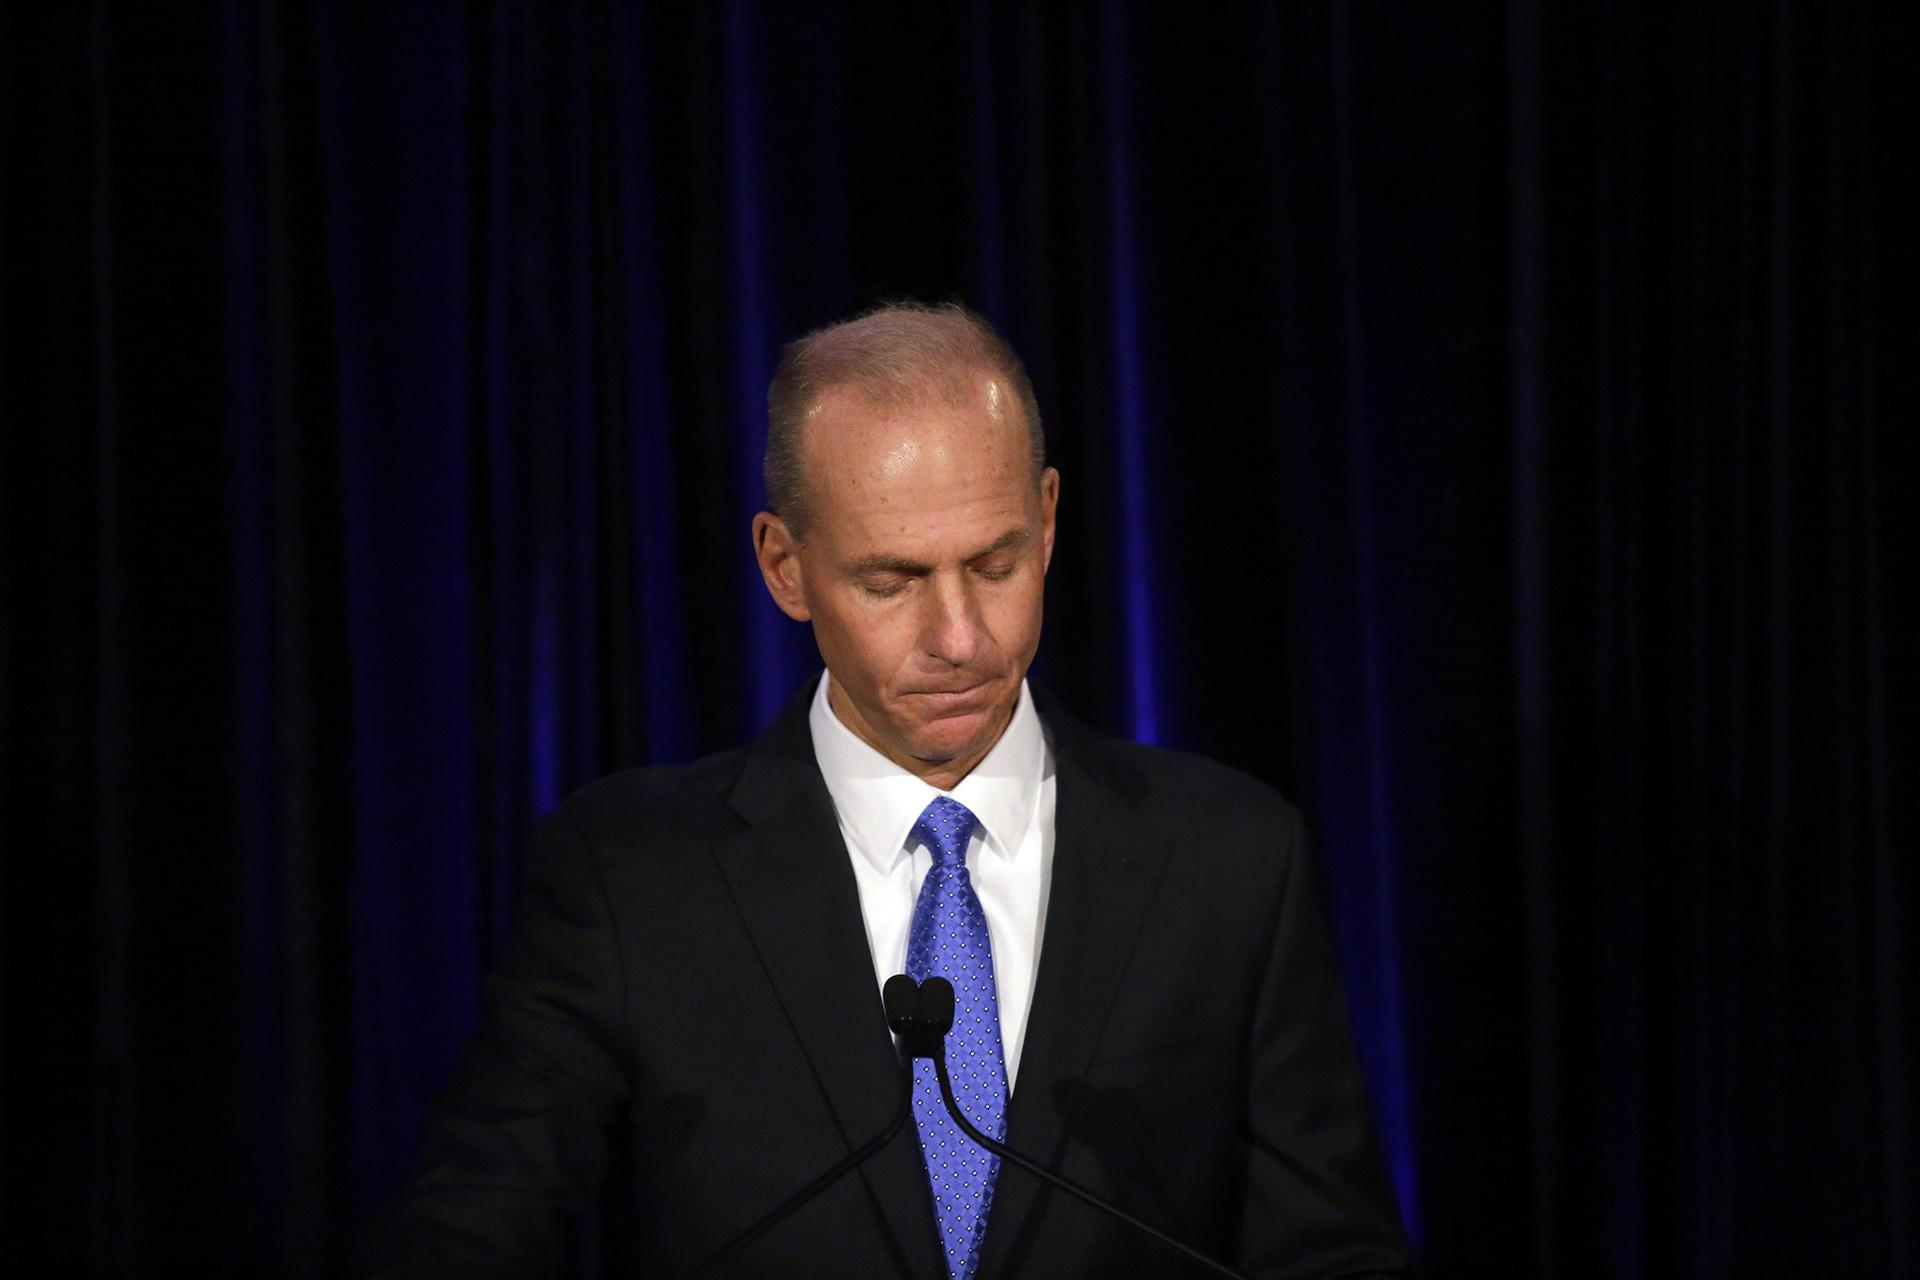 In this April 29, 2019, file pool photo Boeing Chief Executive Dennis Muilenburg speaks at a news conference after company's annual shareholders meeting at the Field Museum in Chicago. (Joshua Lott / The Washington Post via AP, Pool, File)